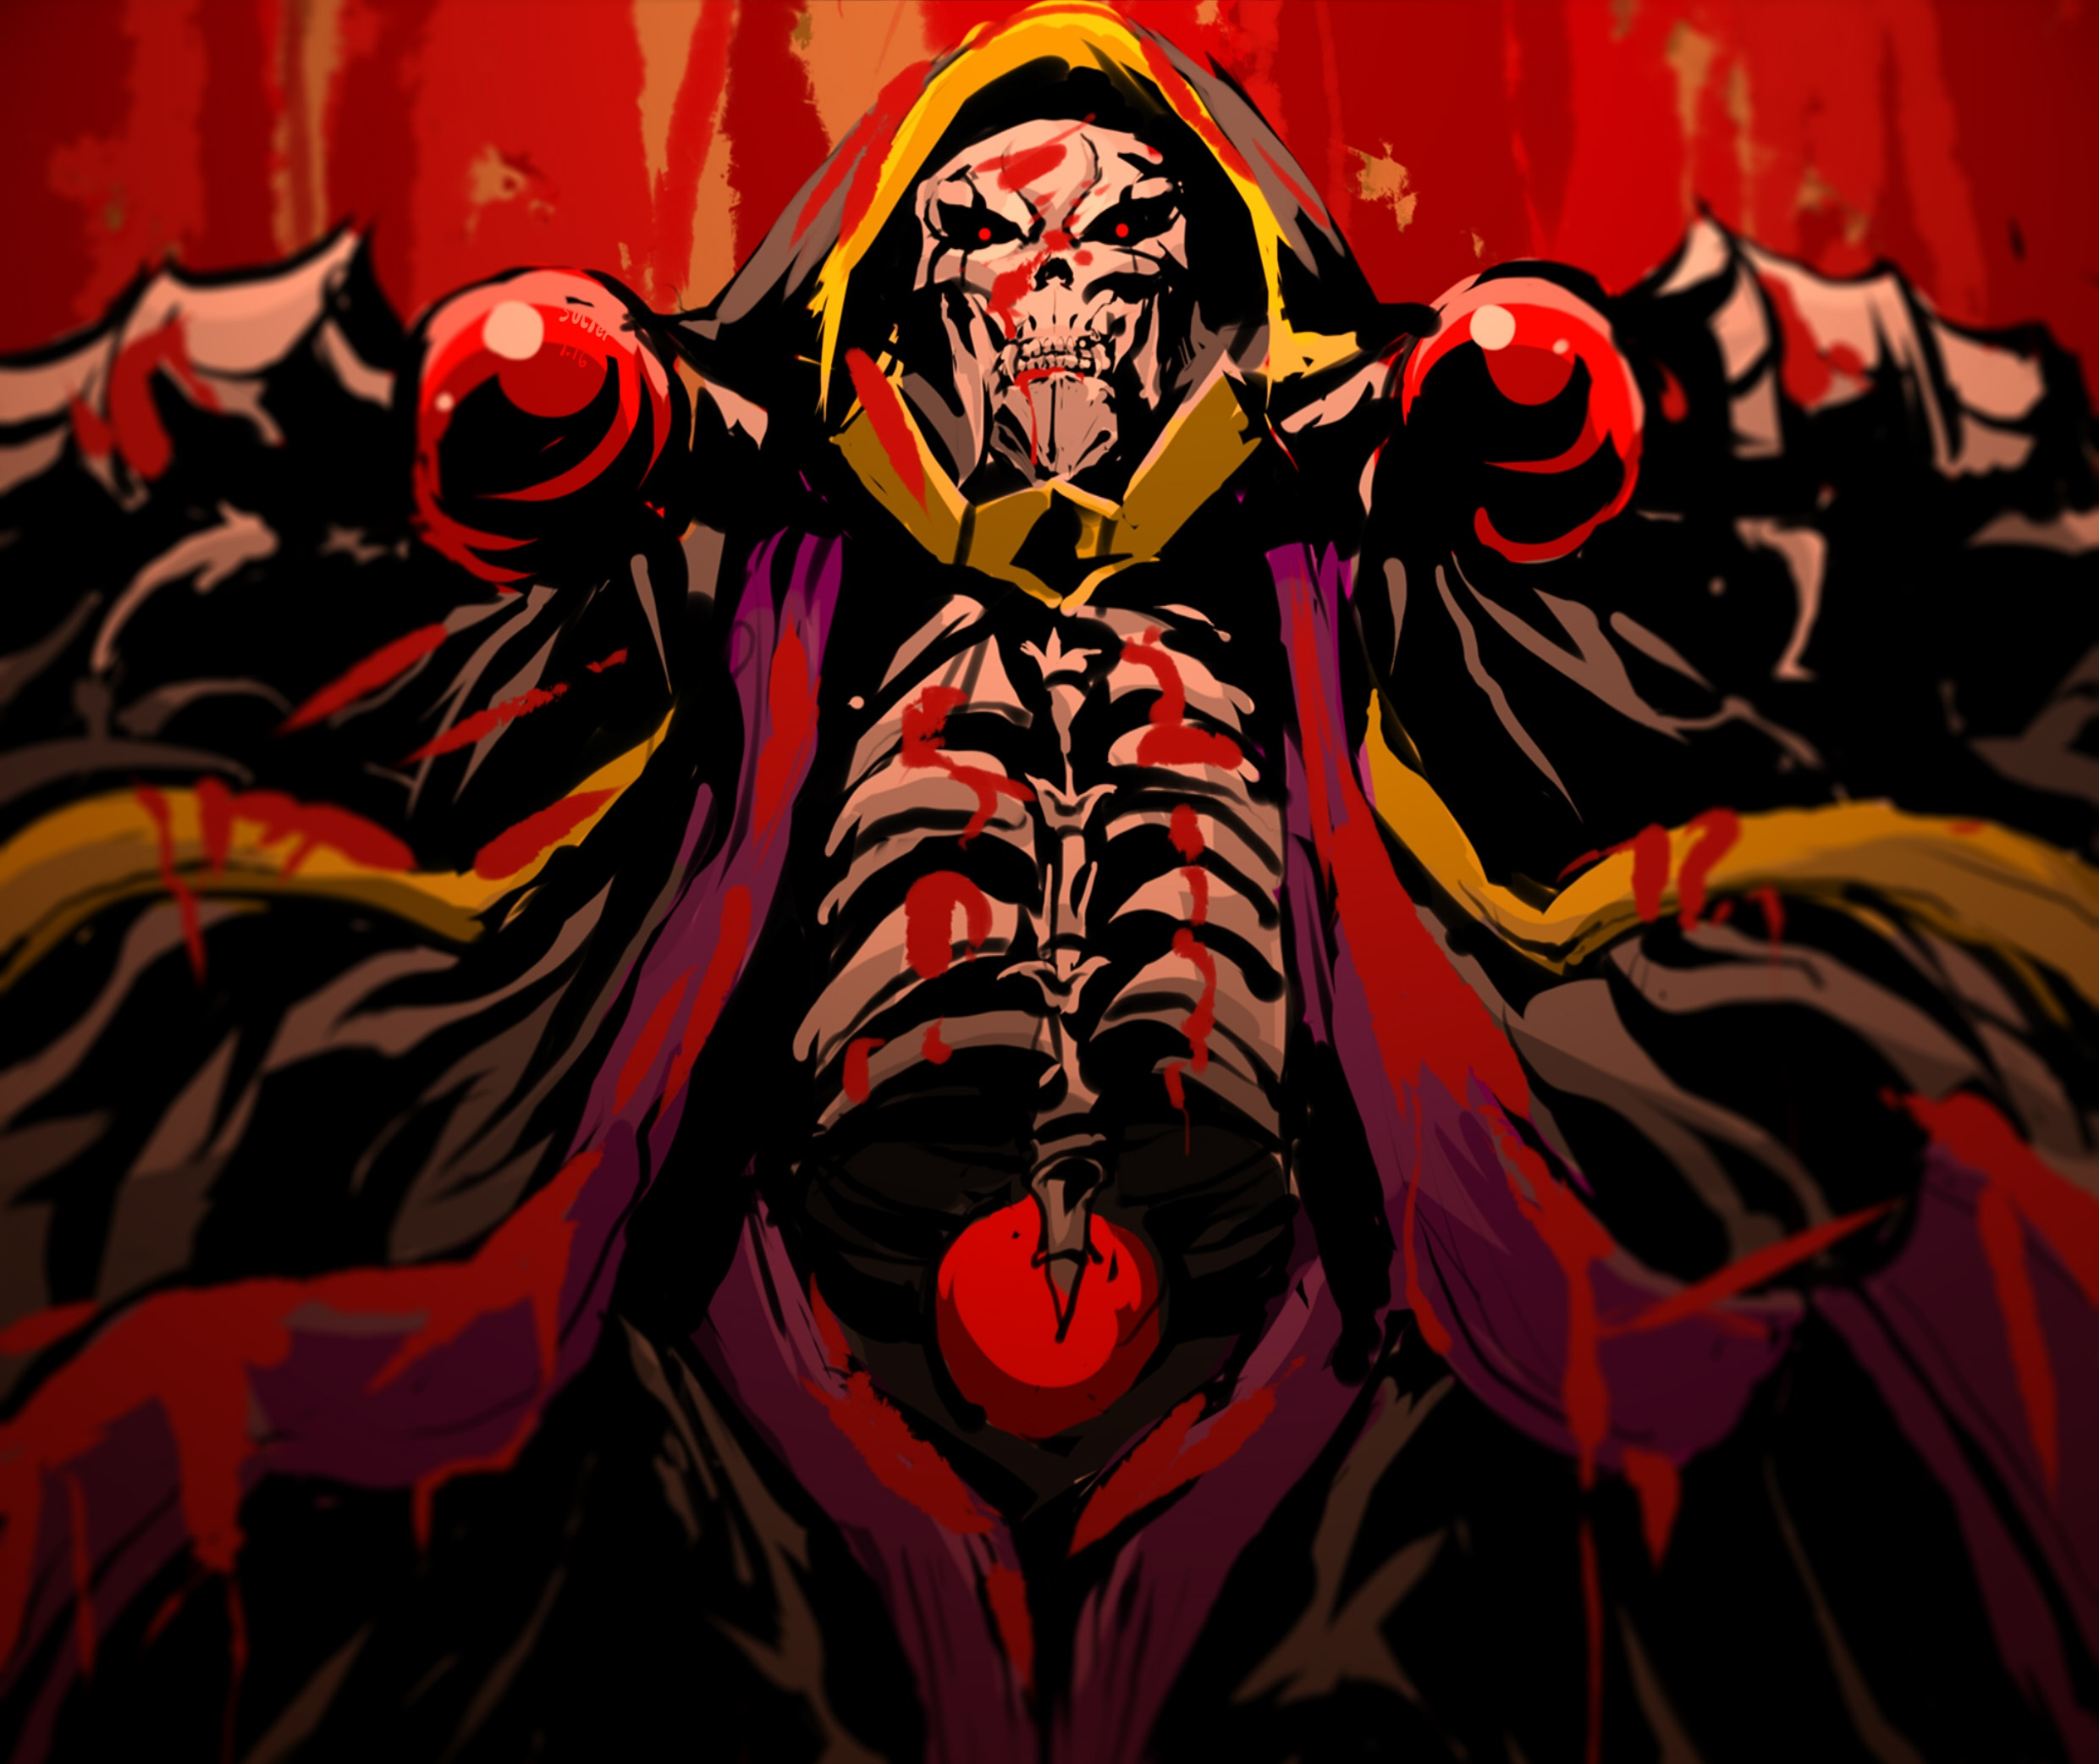 Overlord Art Ainz Ooal Gown 1545792 Hd Wallpaper Backgrounds Download